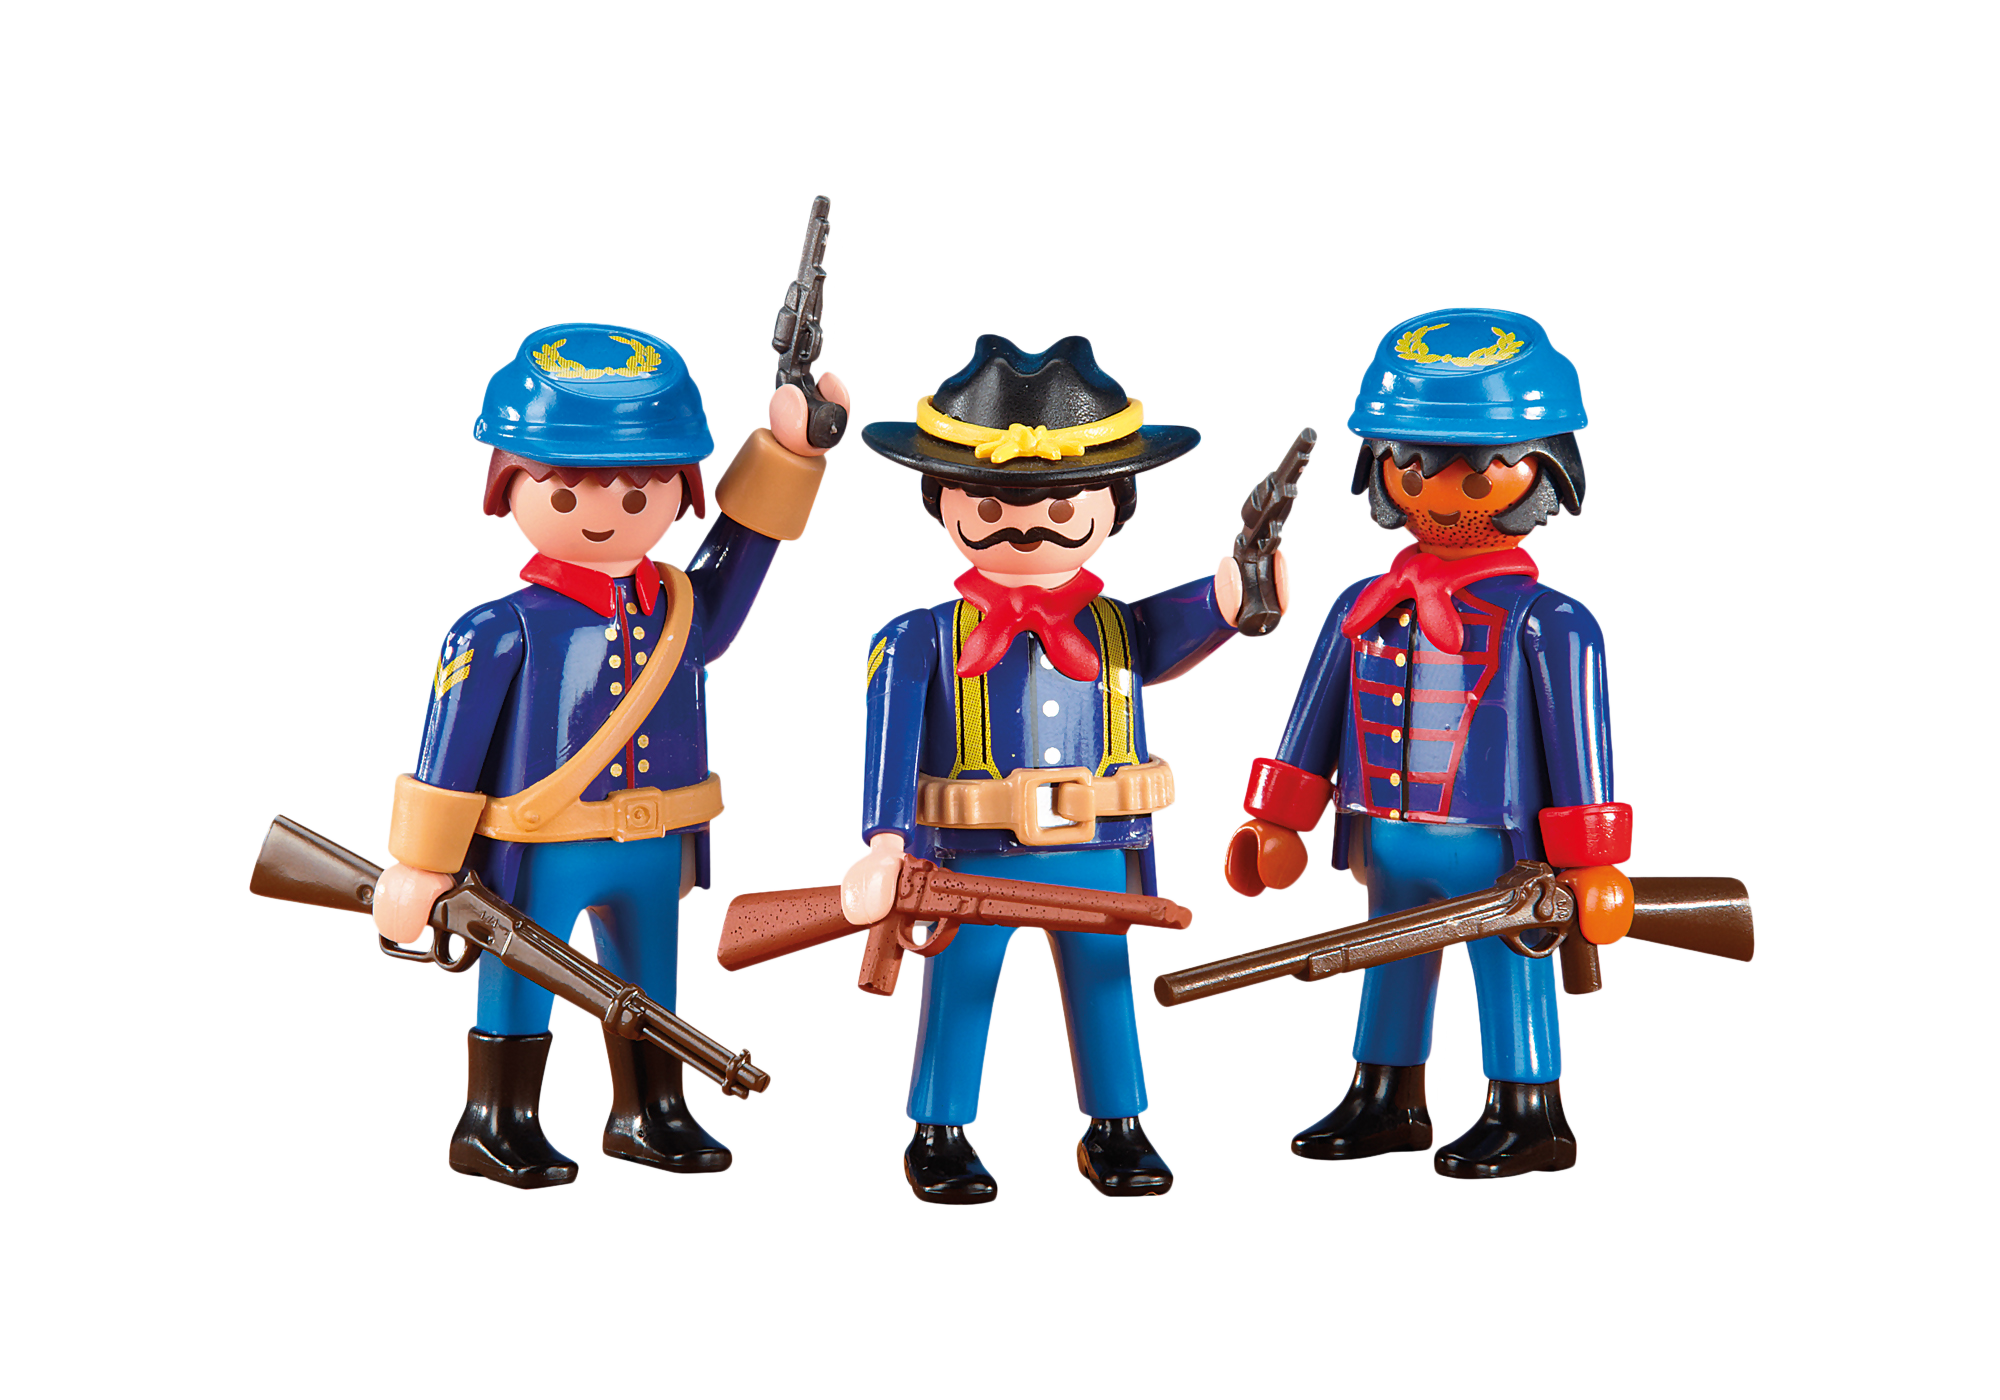 http://media.playmobil.com/i/playmobil/6274_product_detail